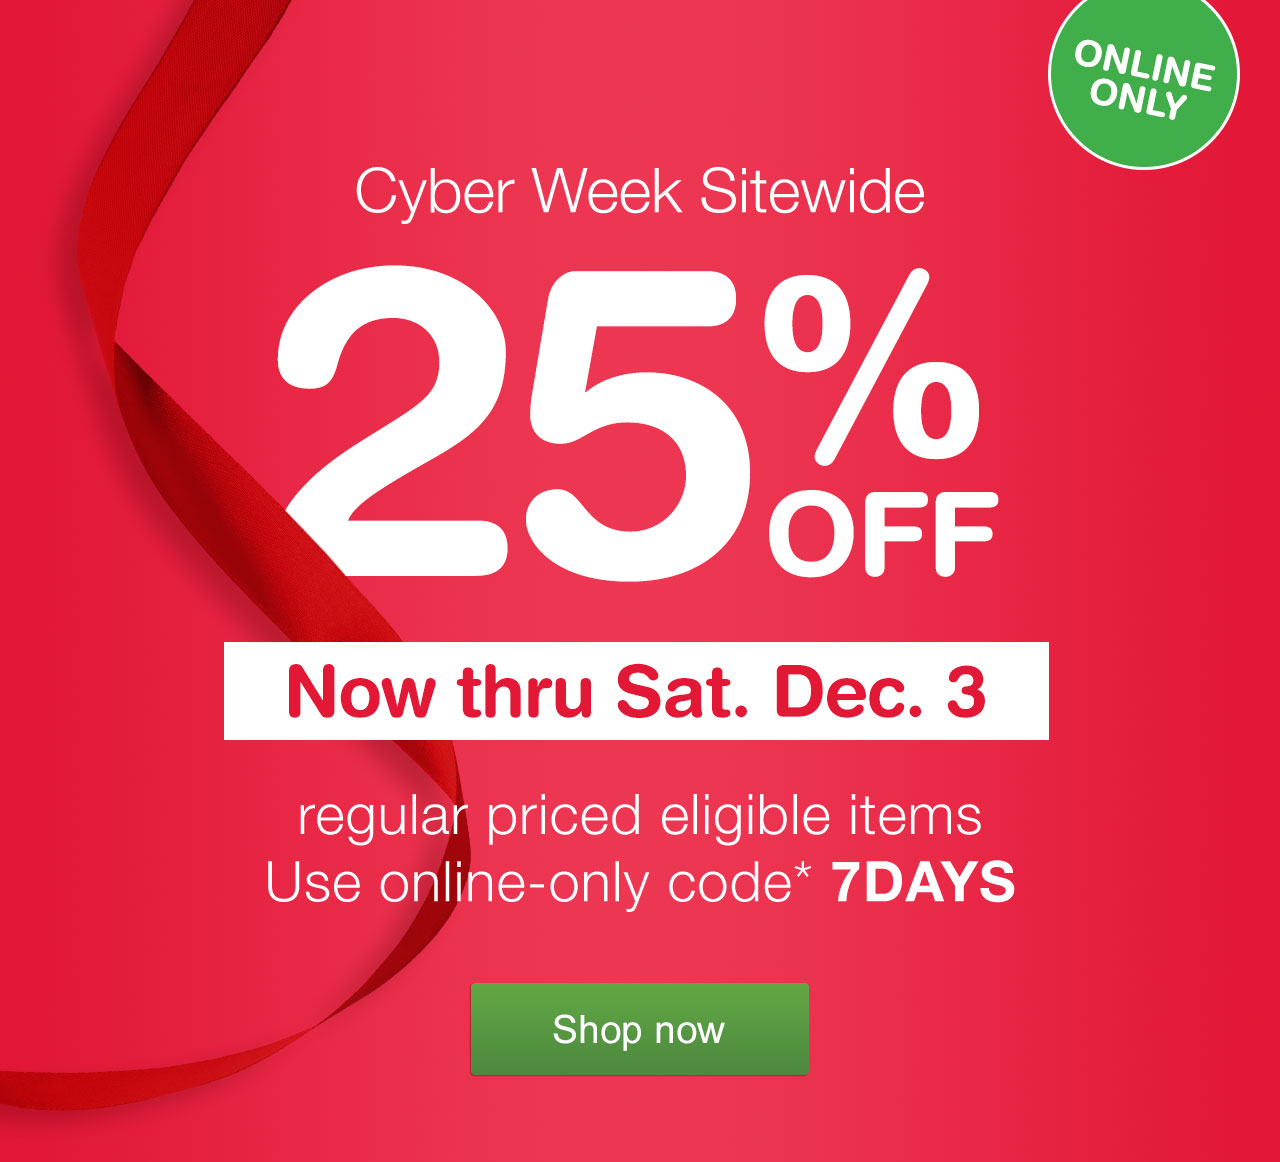 ONLINE ONLY Cyber Week Sitewide